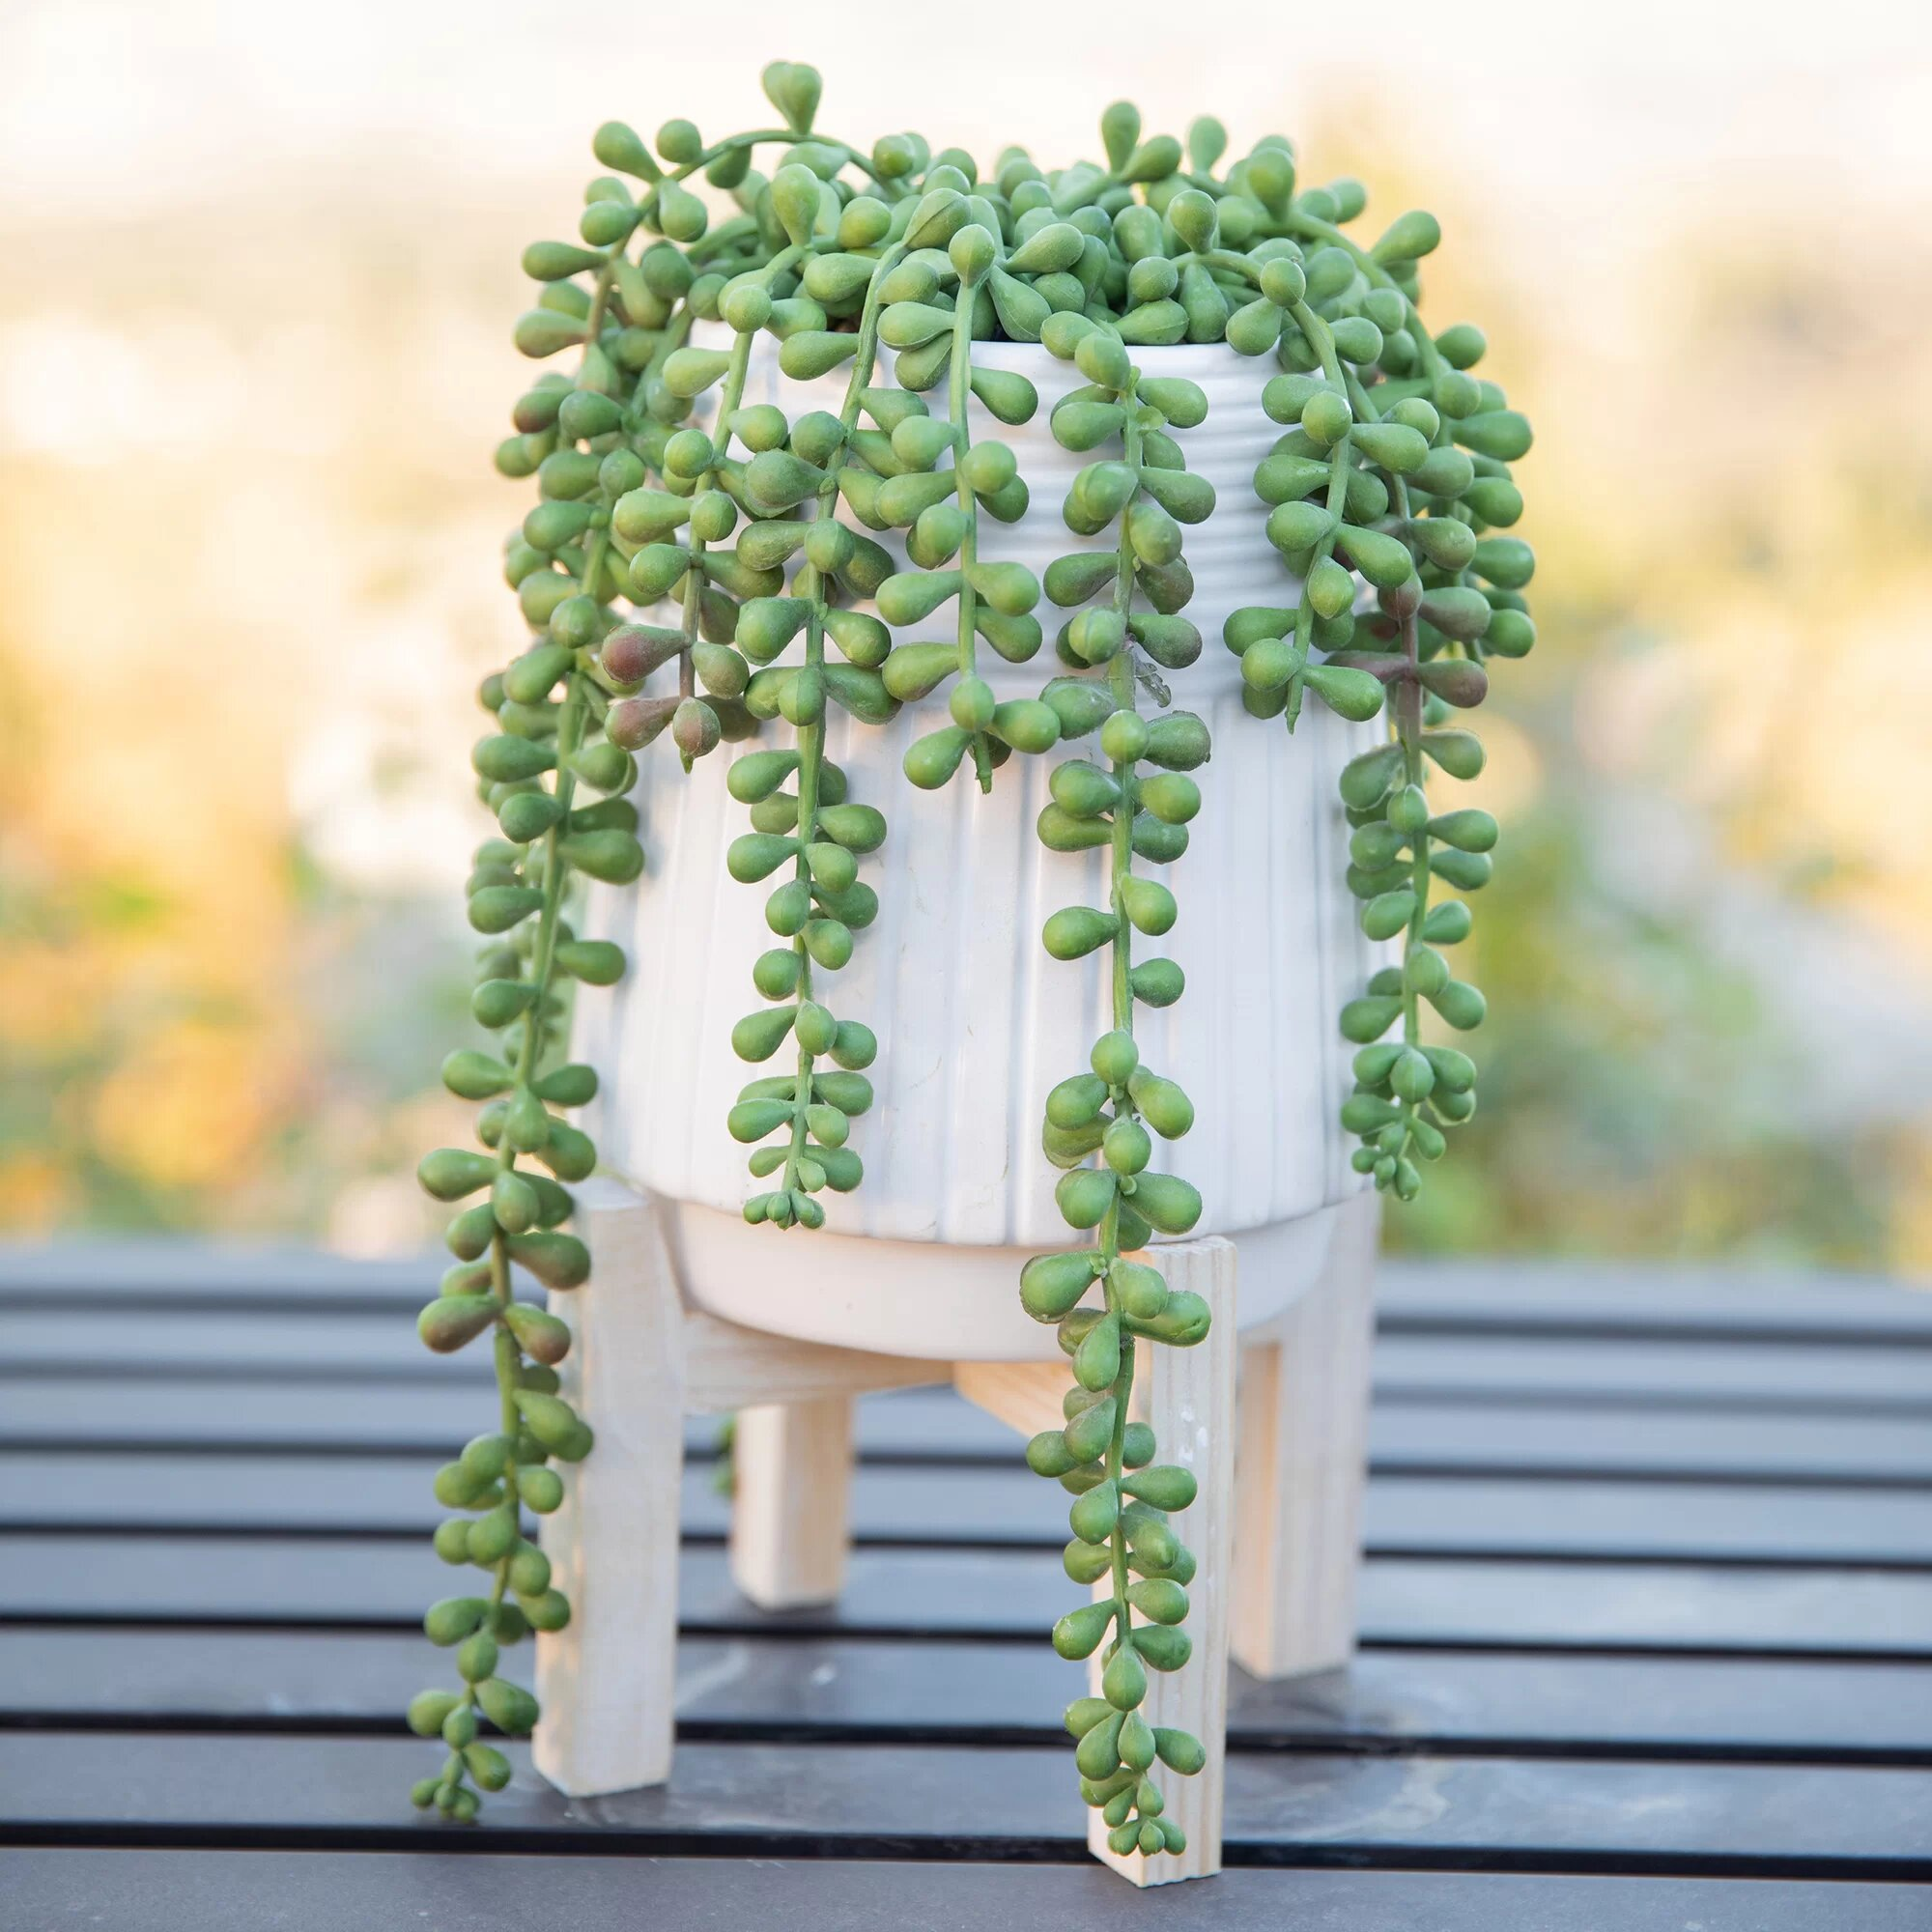 How To Take Care Of String Of Pearls Flowering Succulents Network